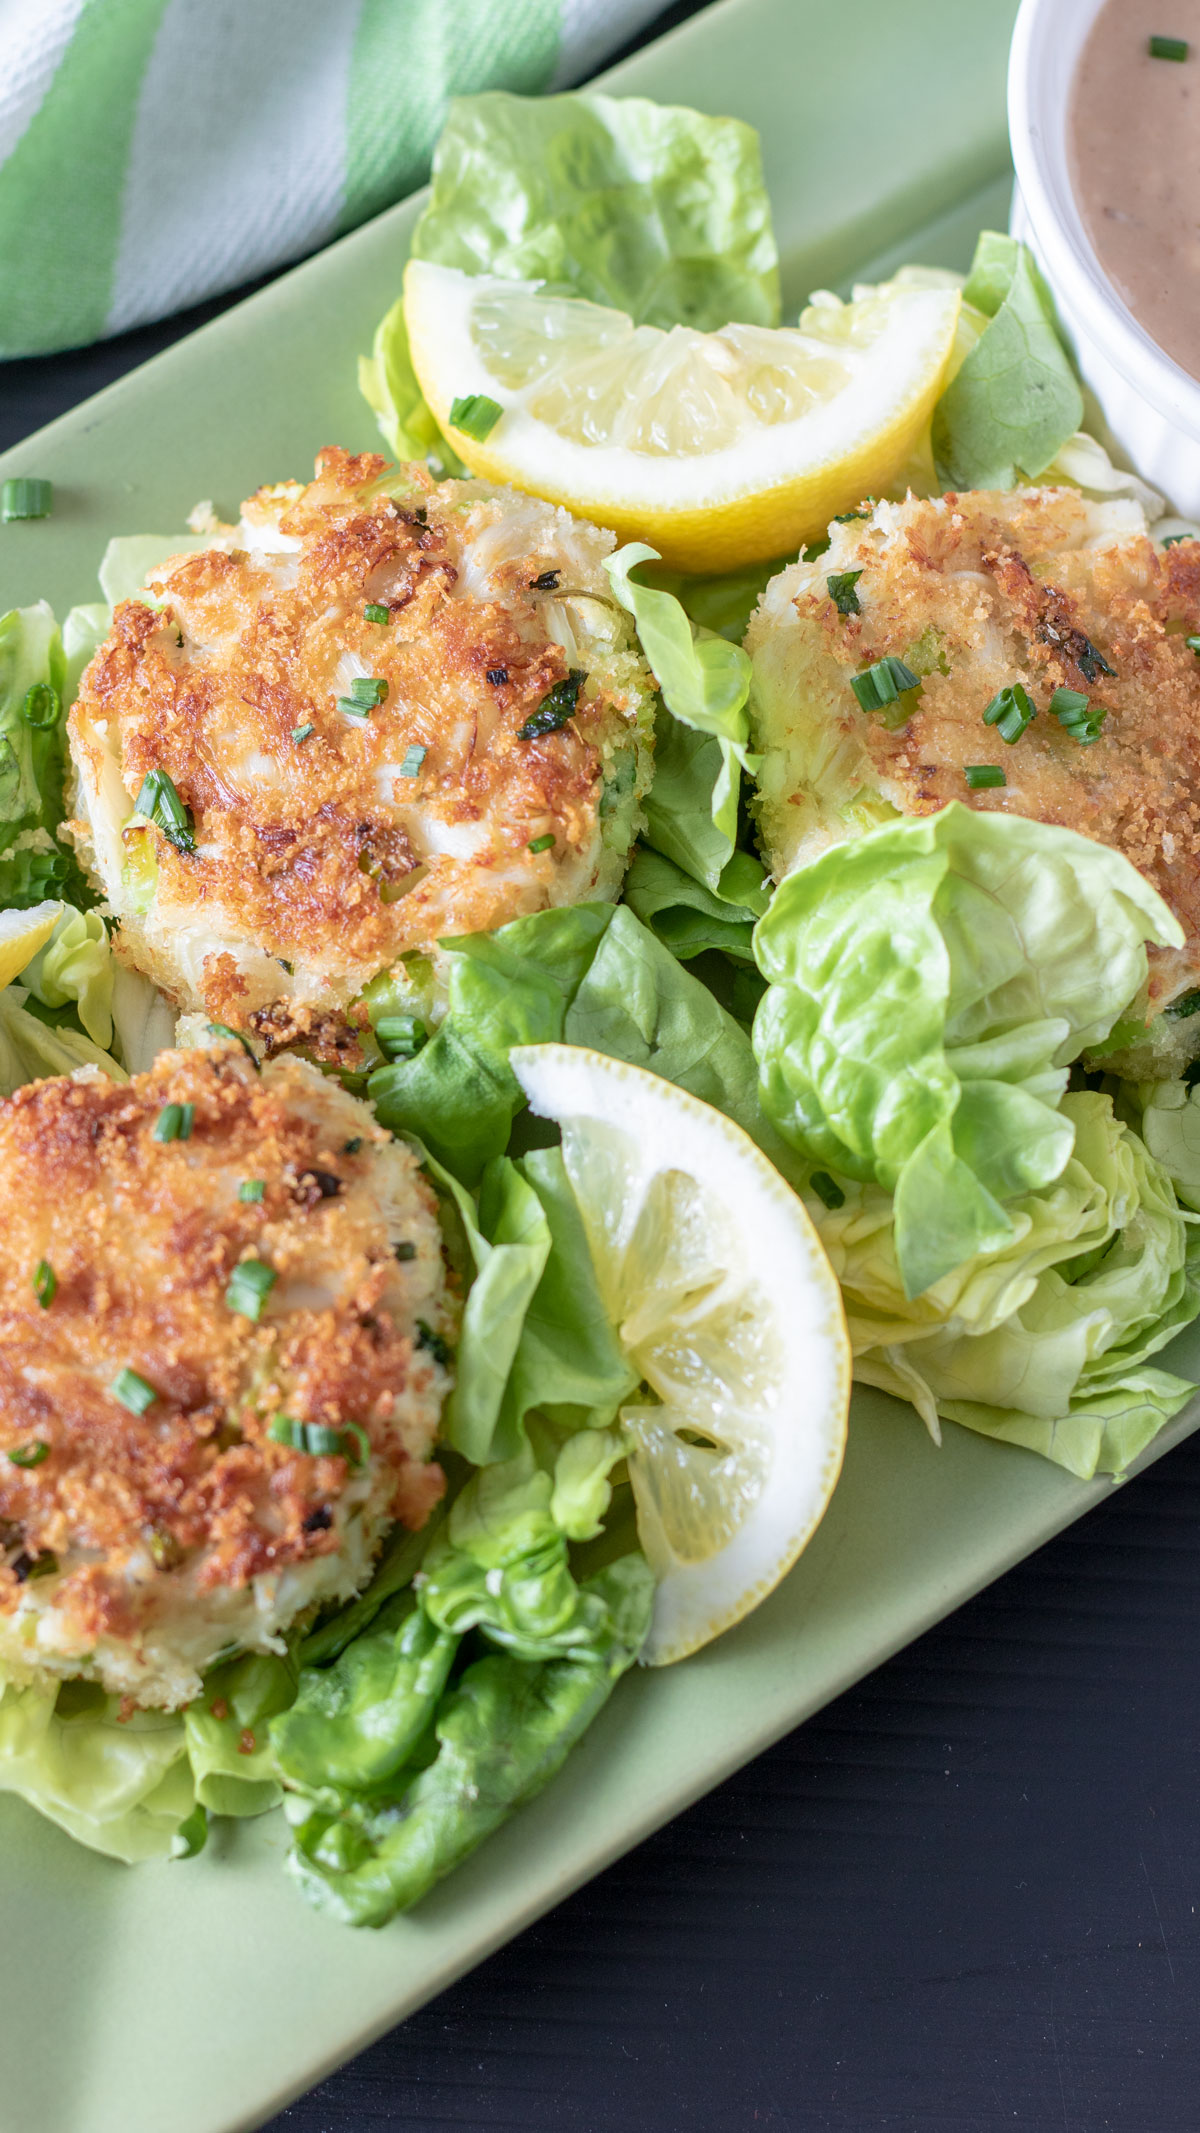 Crab cakes on serving tray with bowl of comeback sauce.